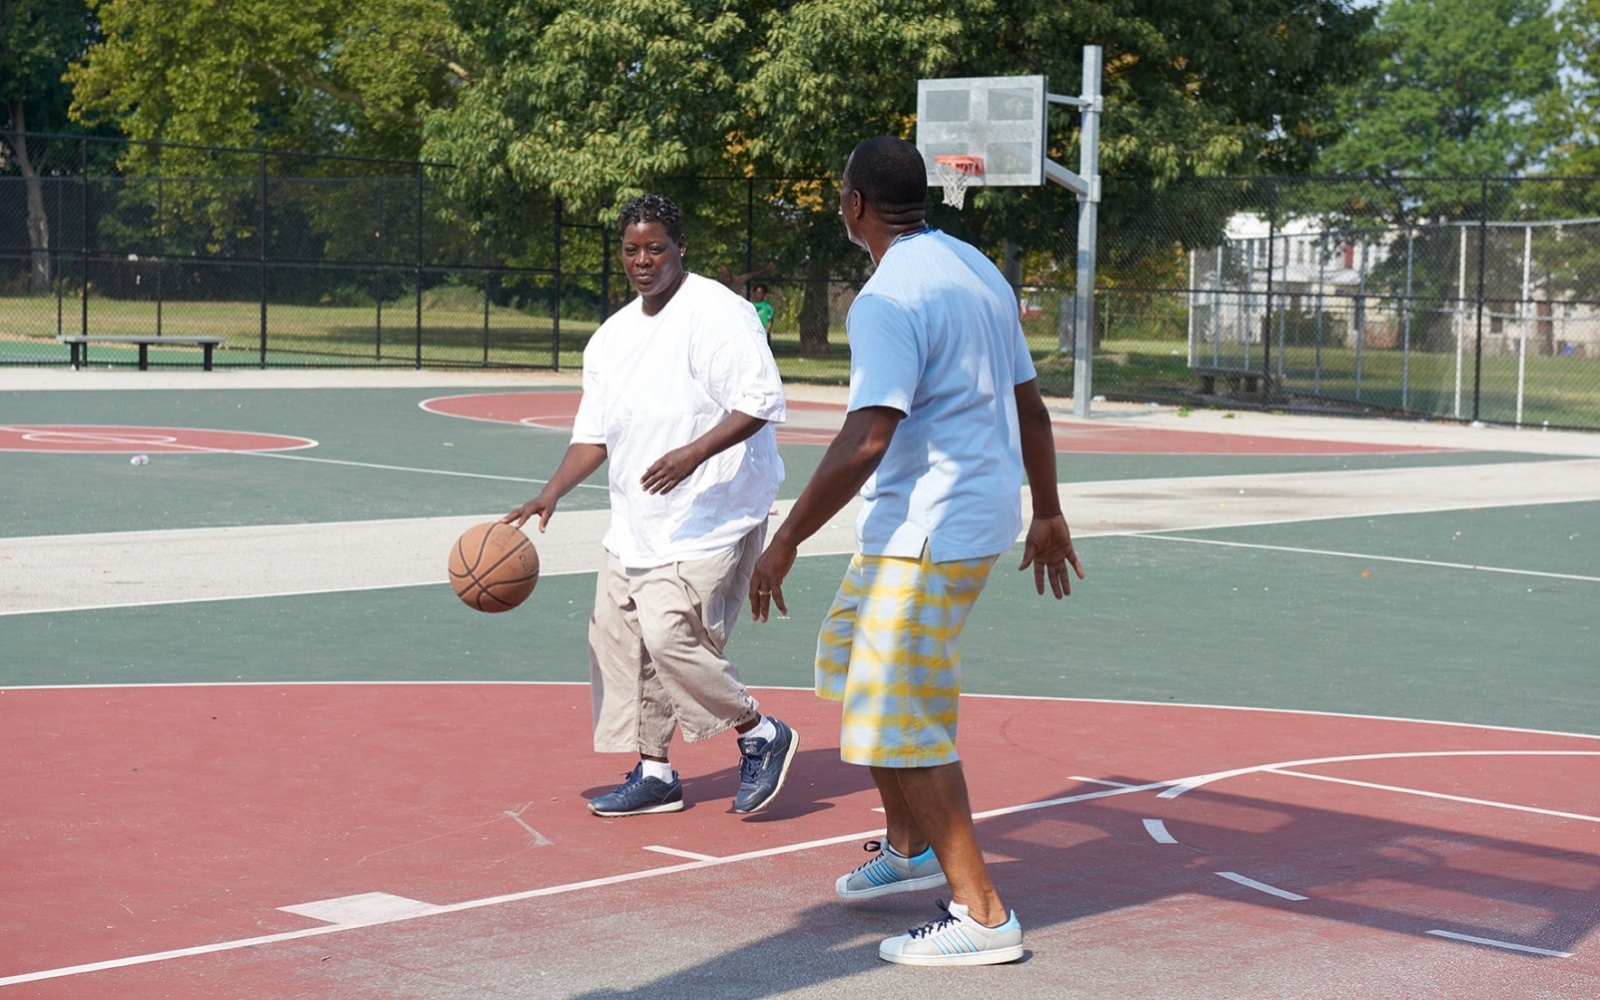 A community health worker plays basketball with a patient